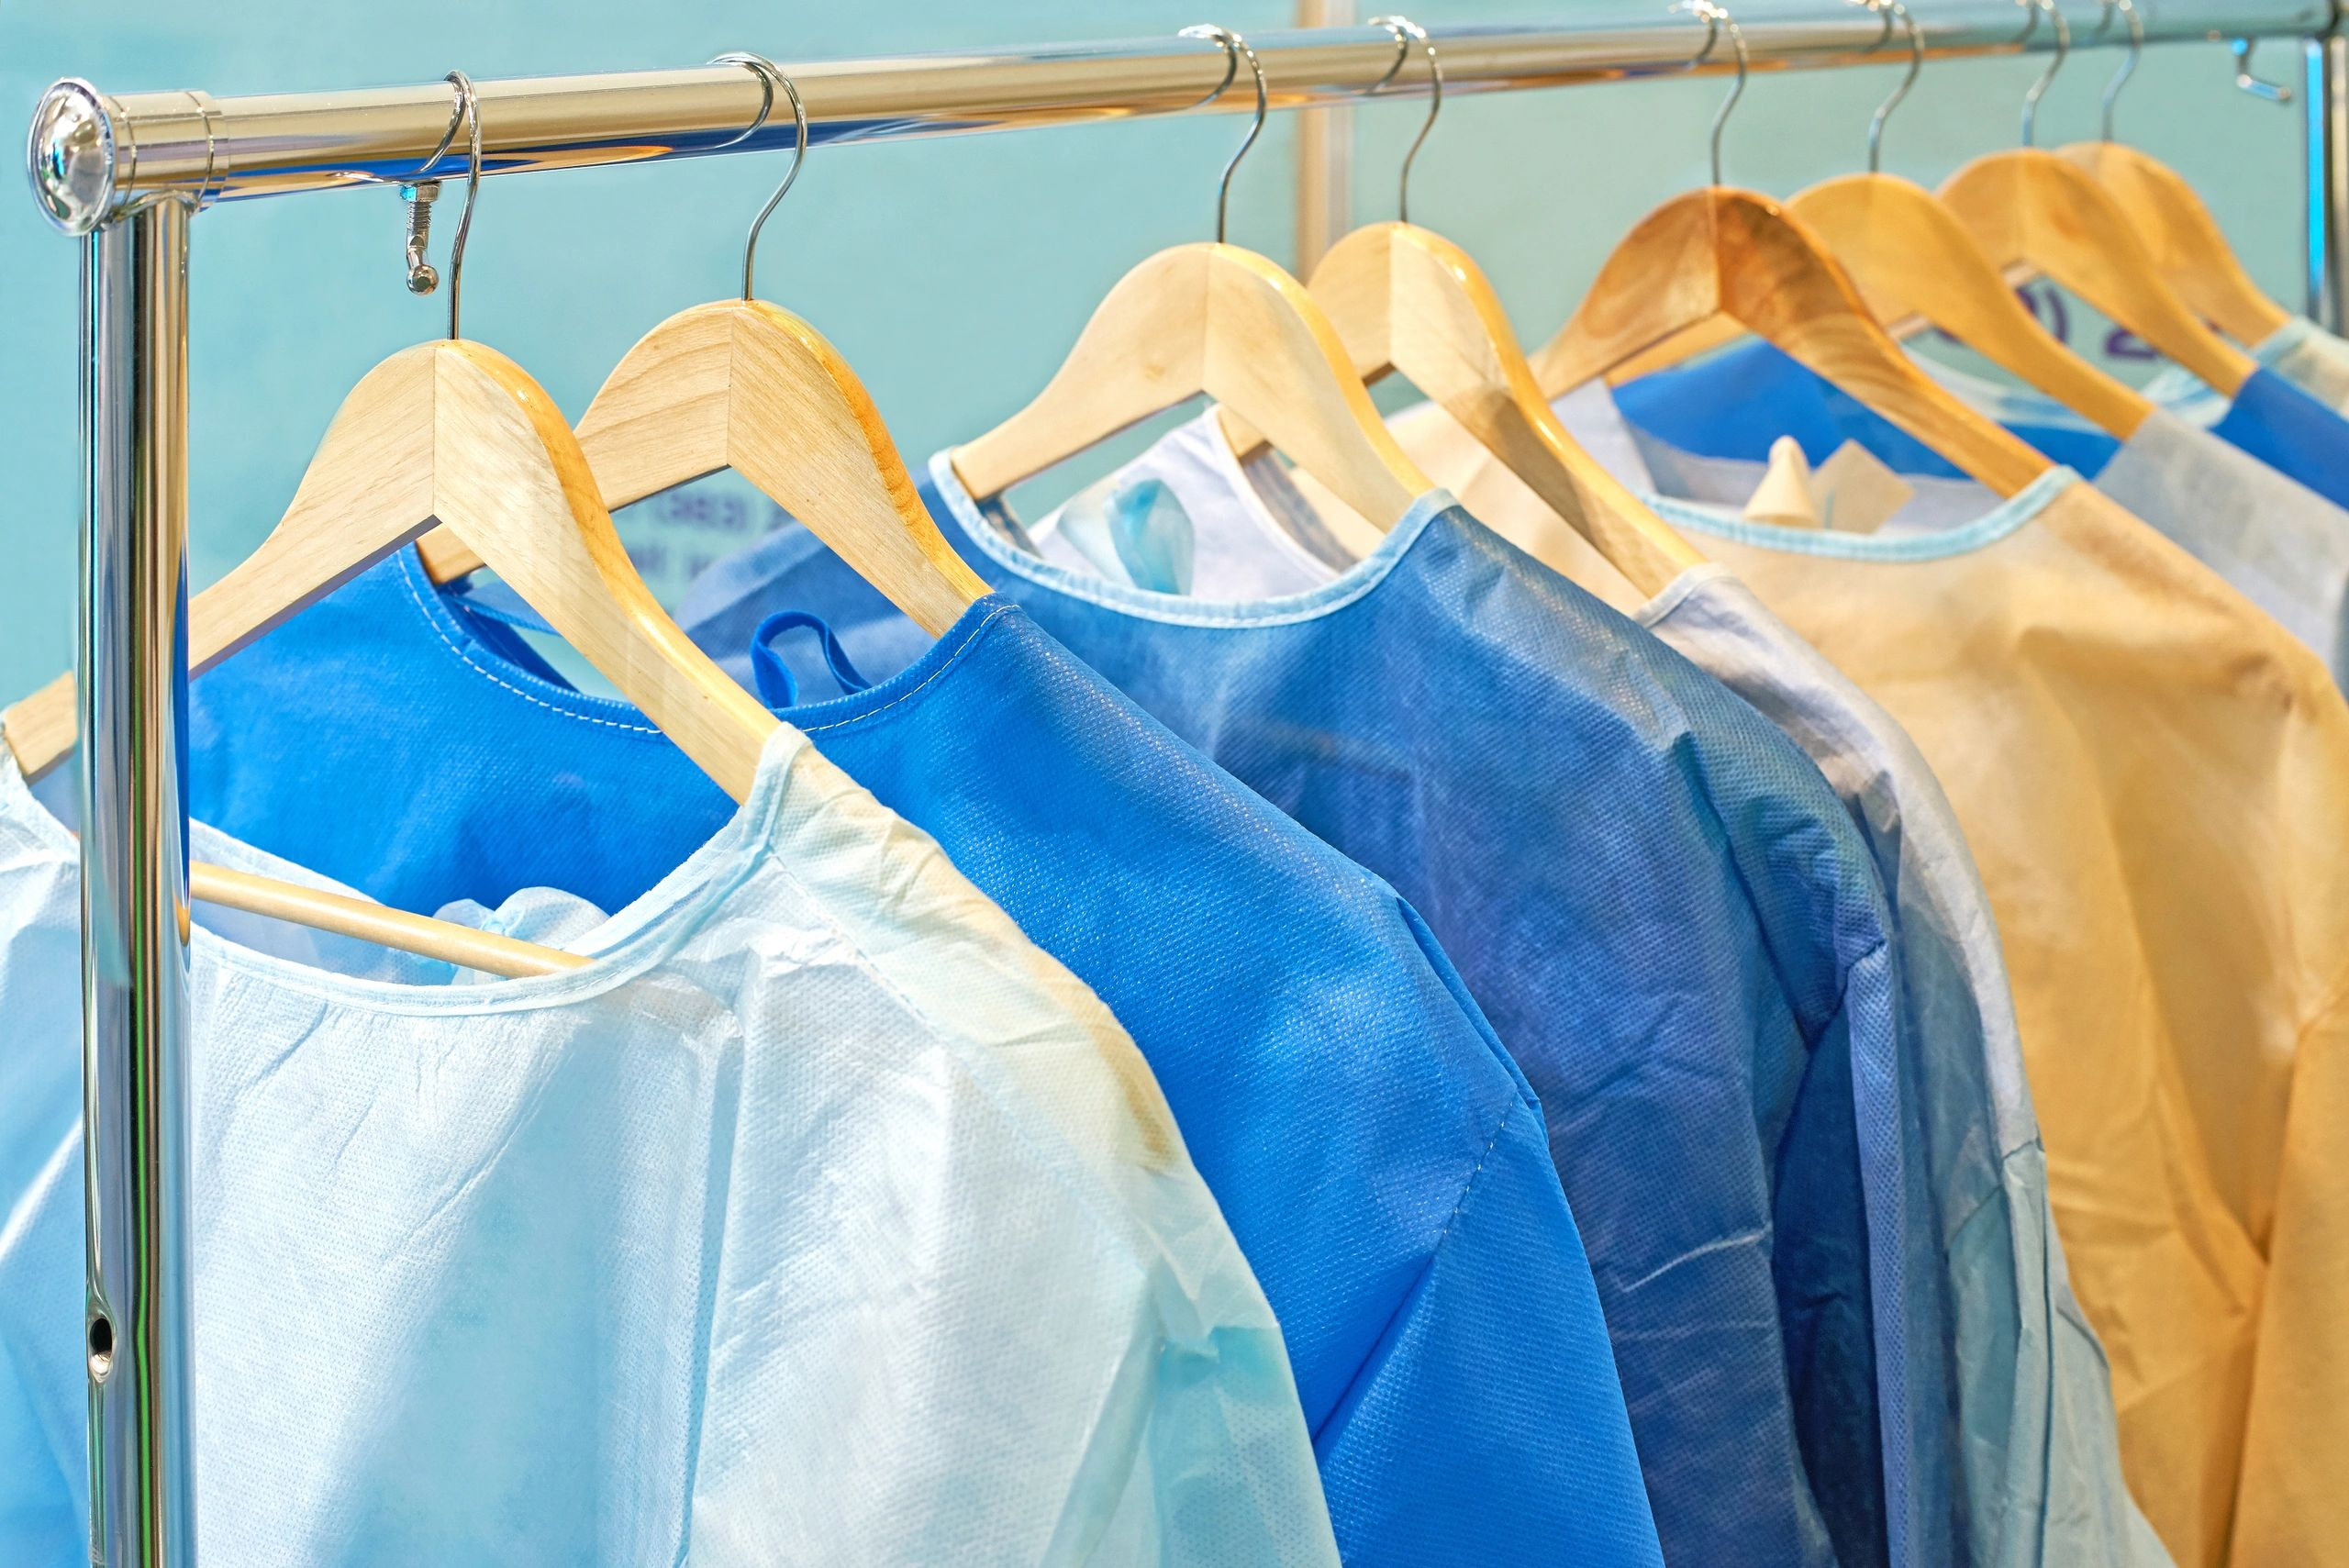 Hospital Gowns, Robes, PPE or Personal Protective Equipment